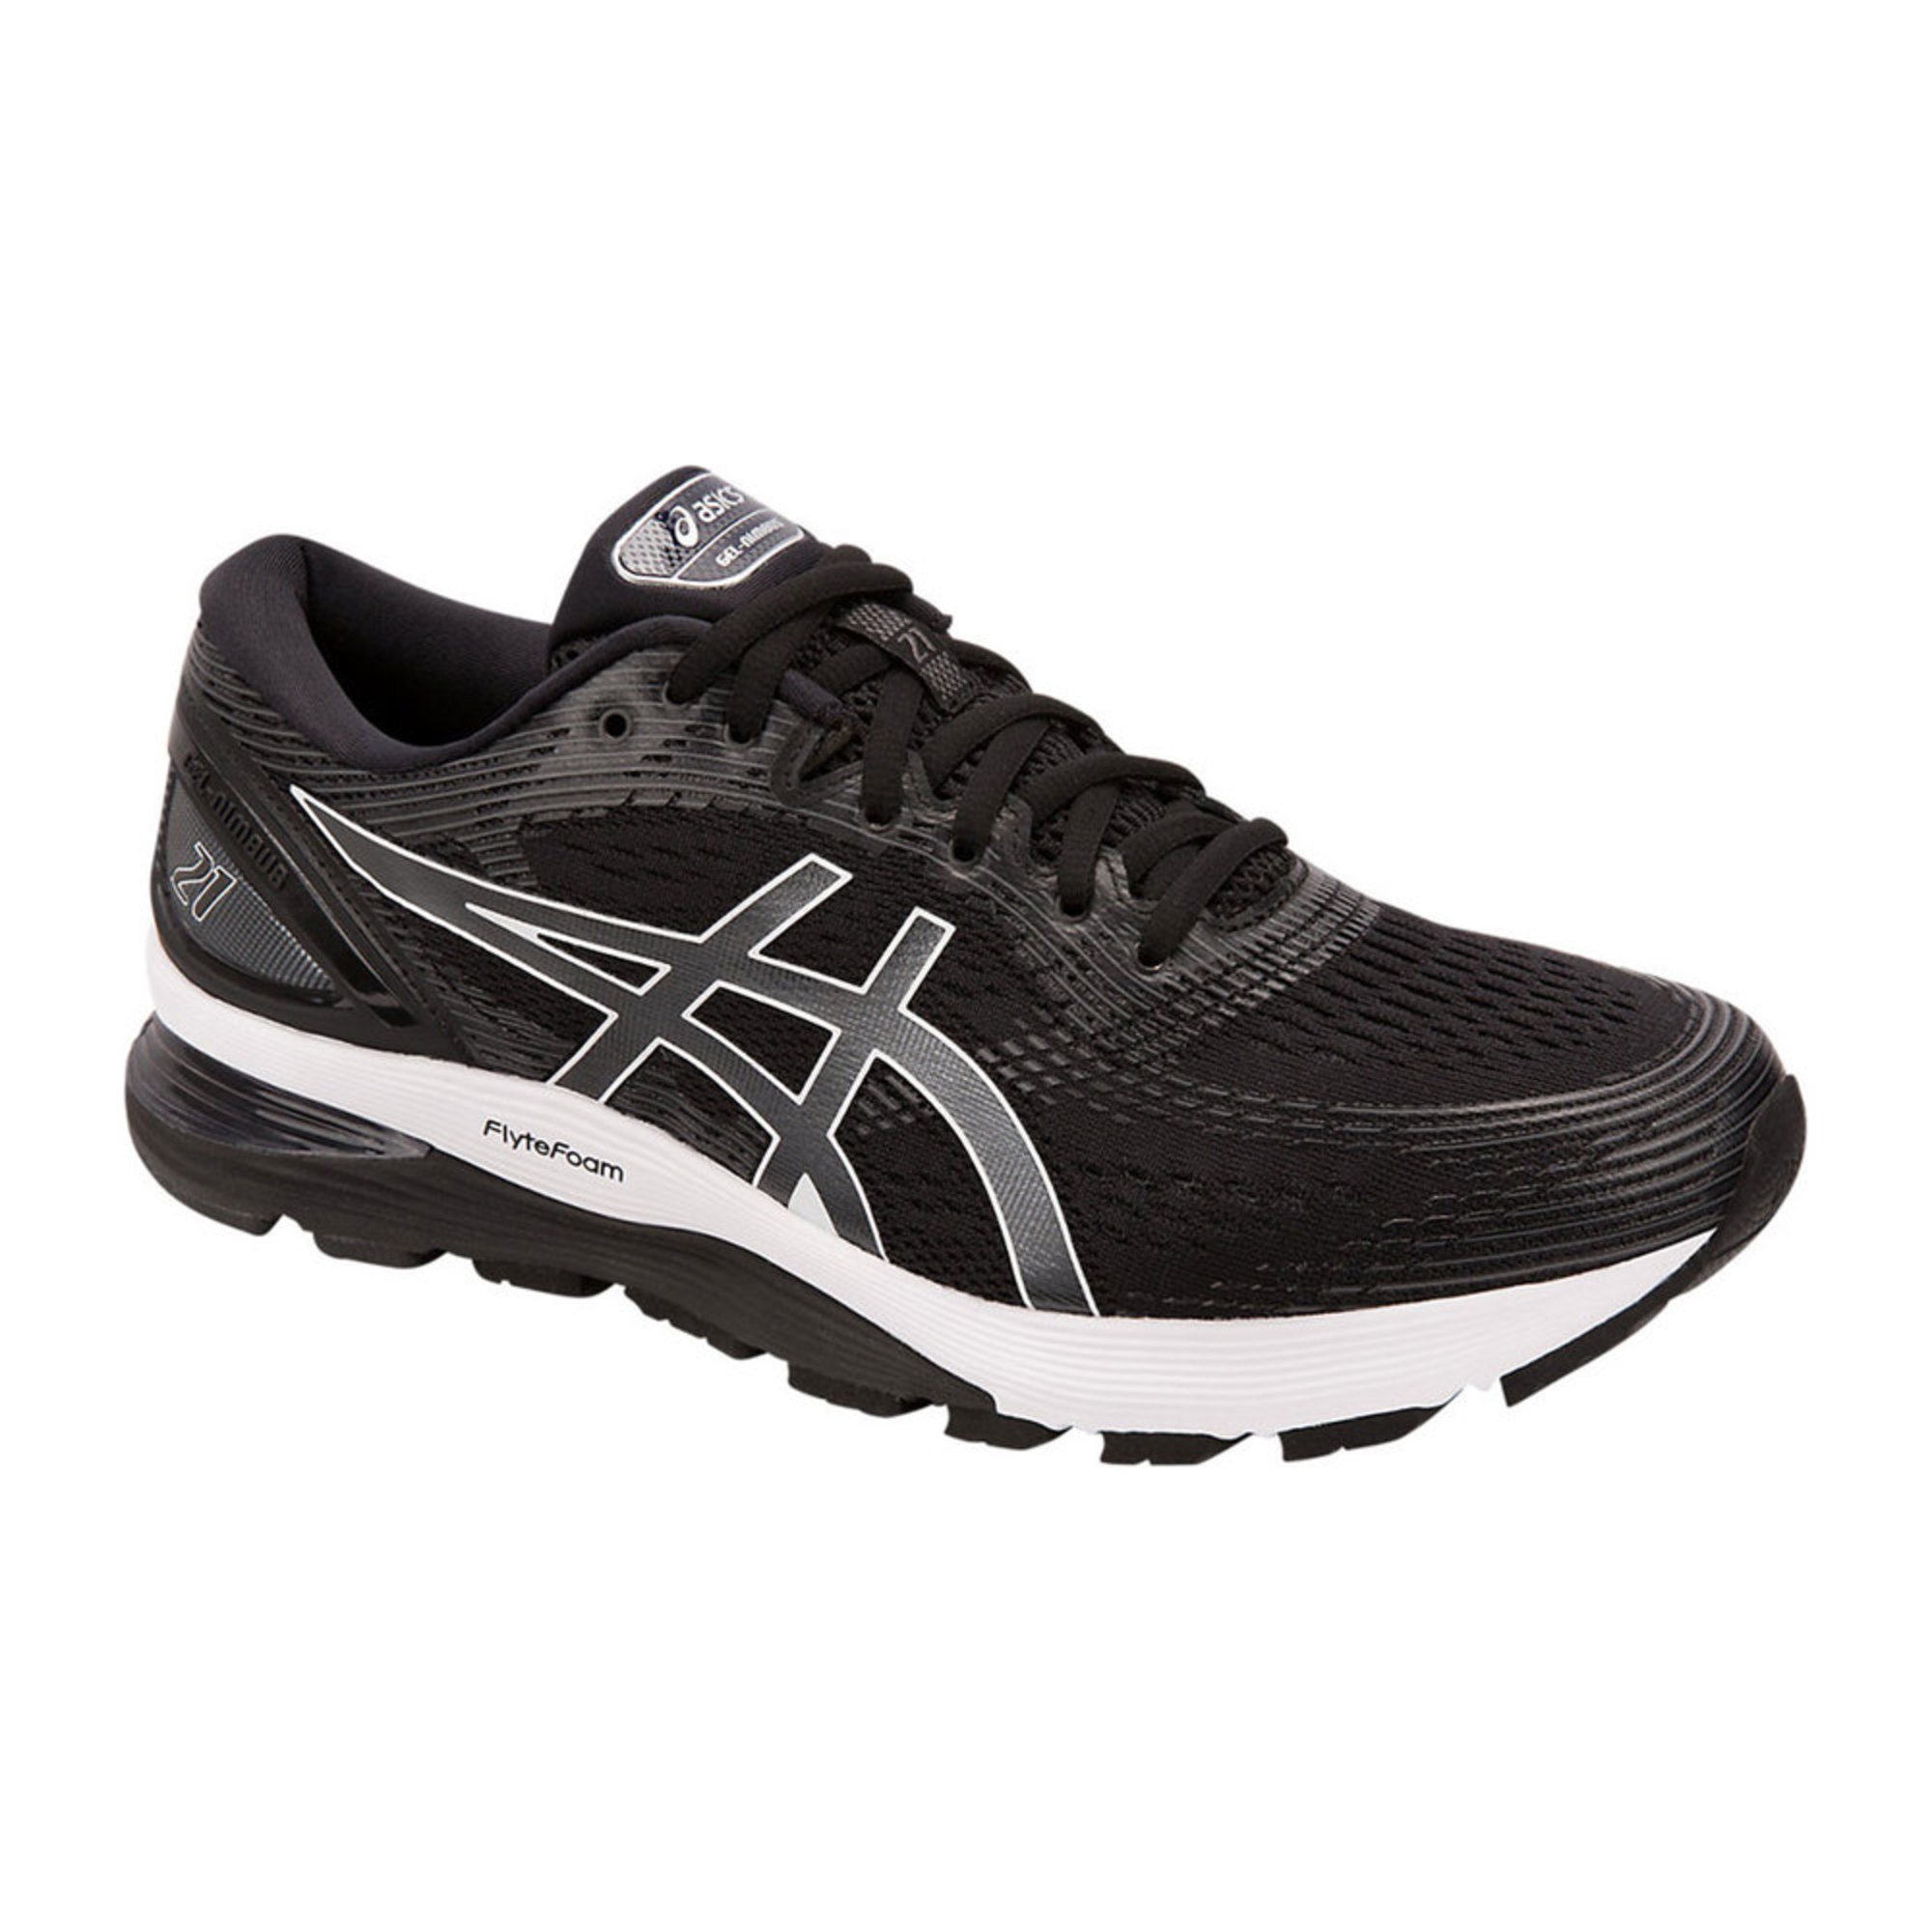 09744581fa Asics Men's Gel Nimbus 21 Running Shoe